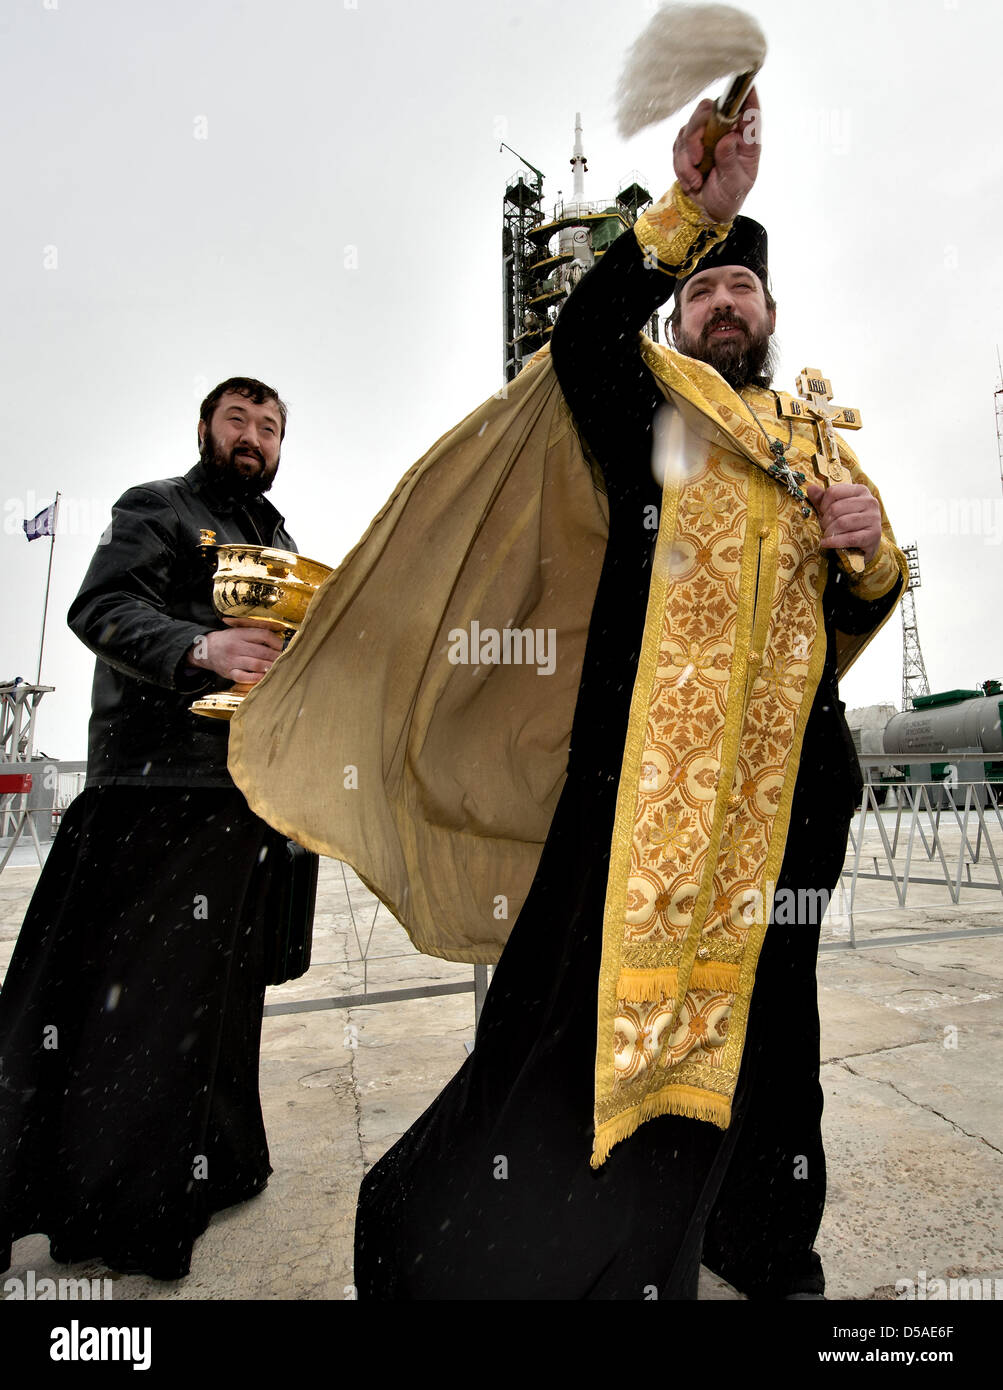 A Russian Orthodox priest blesses members of the media shortly after blessing the Soyuz rocket at the Baikonur Cosmodrome Stock Photo